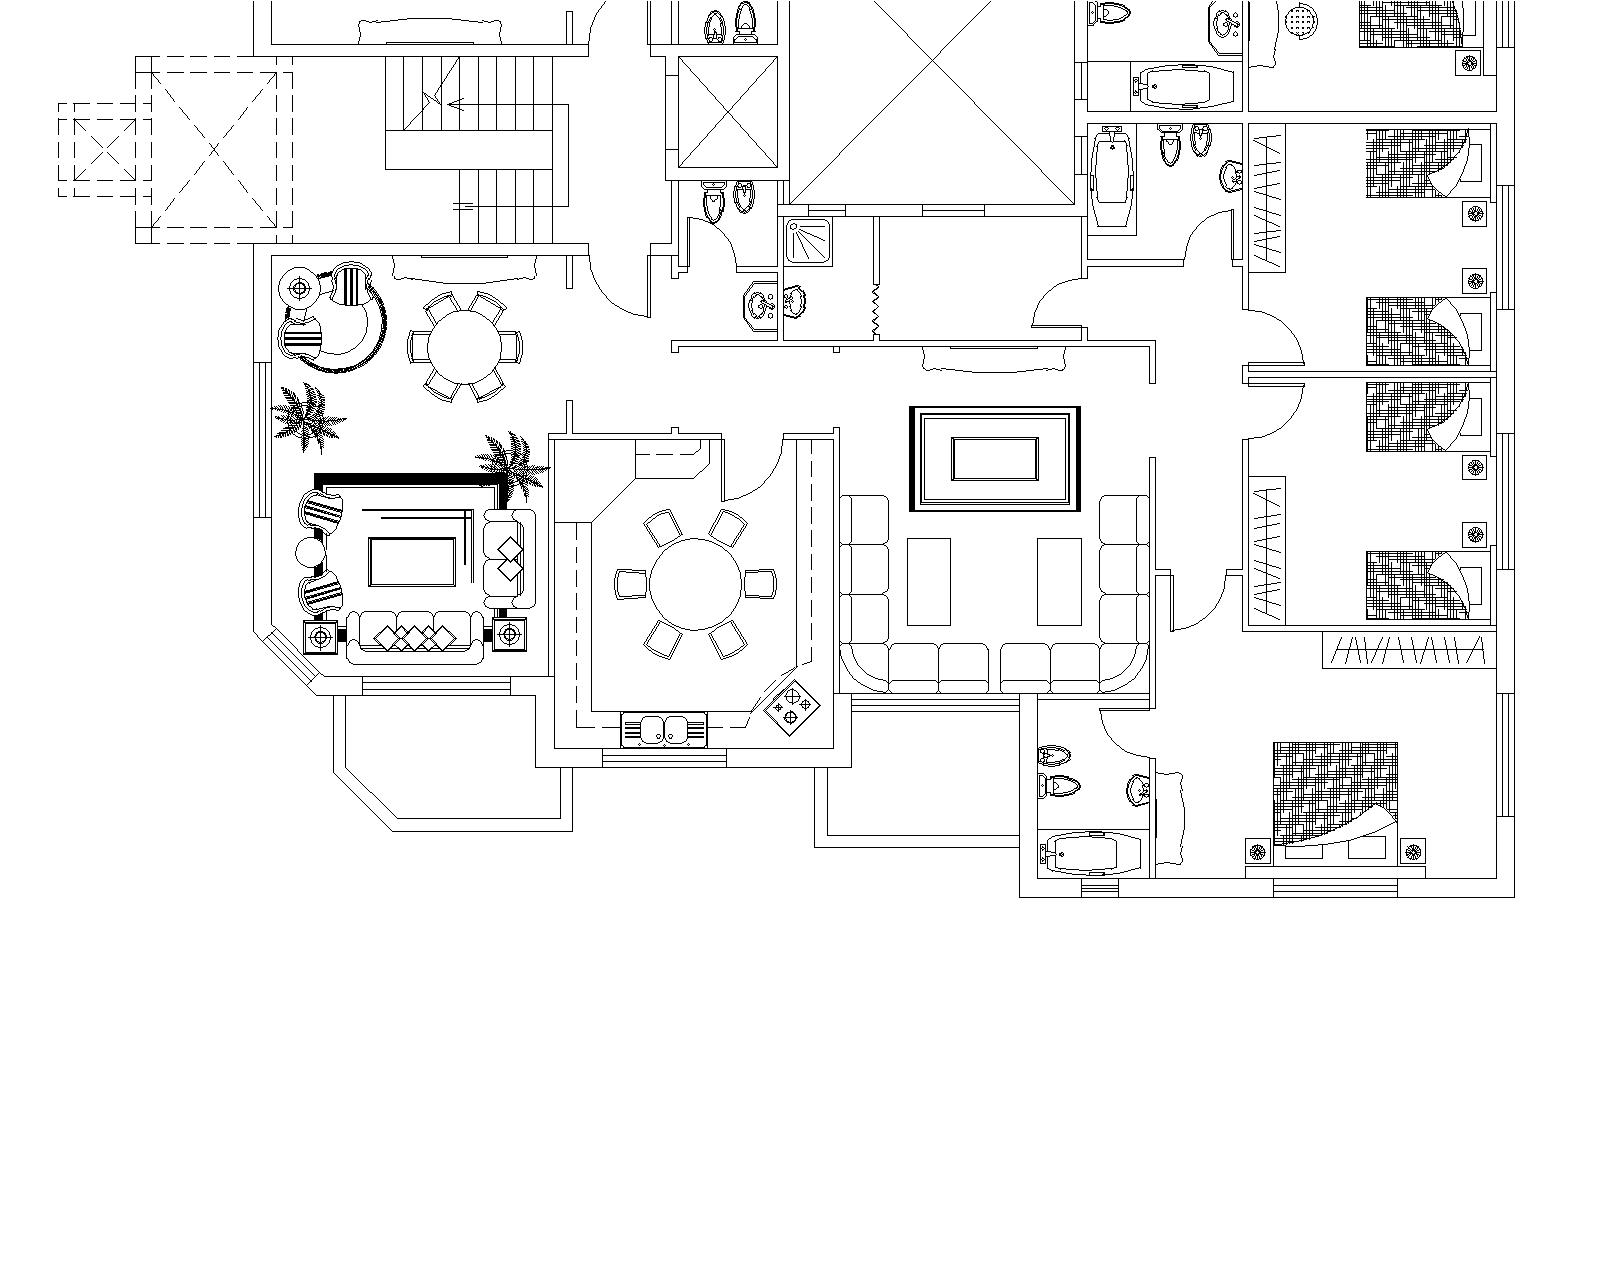 Apartments Building Typical Floor Plan